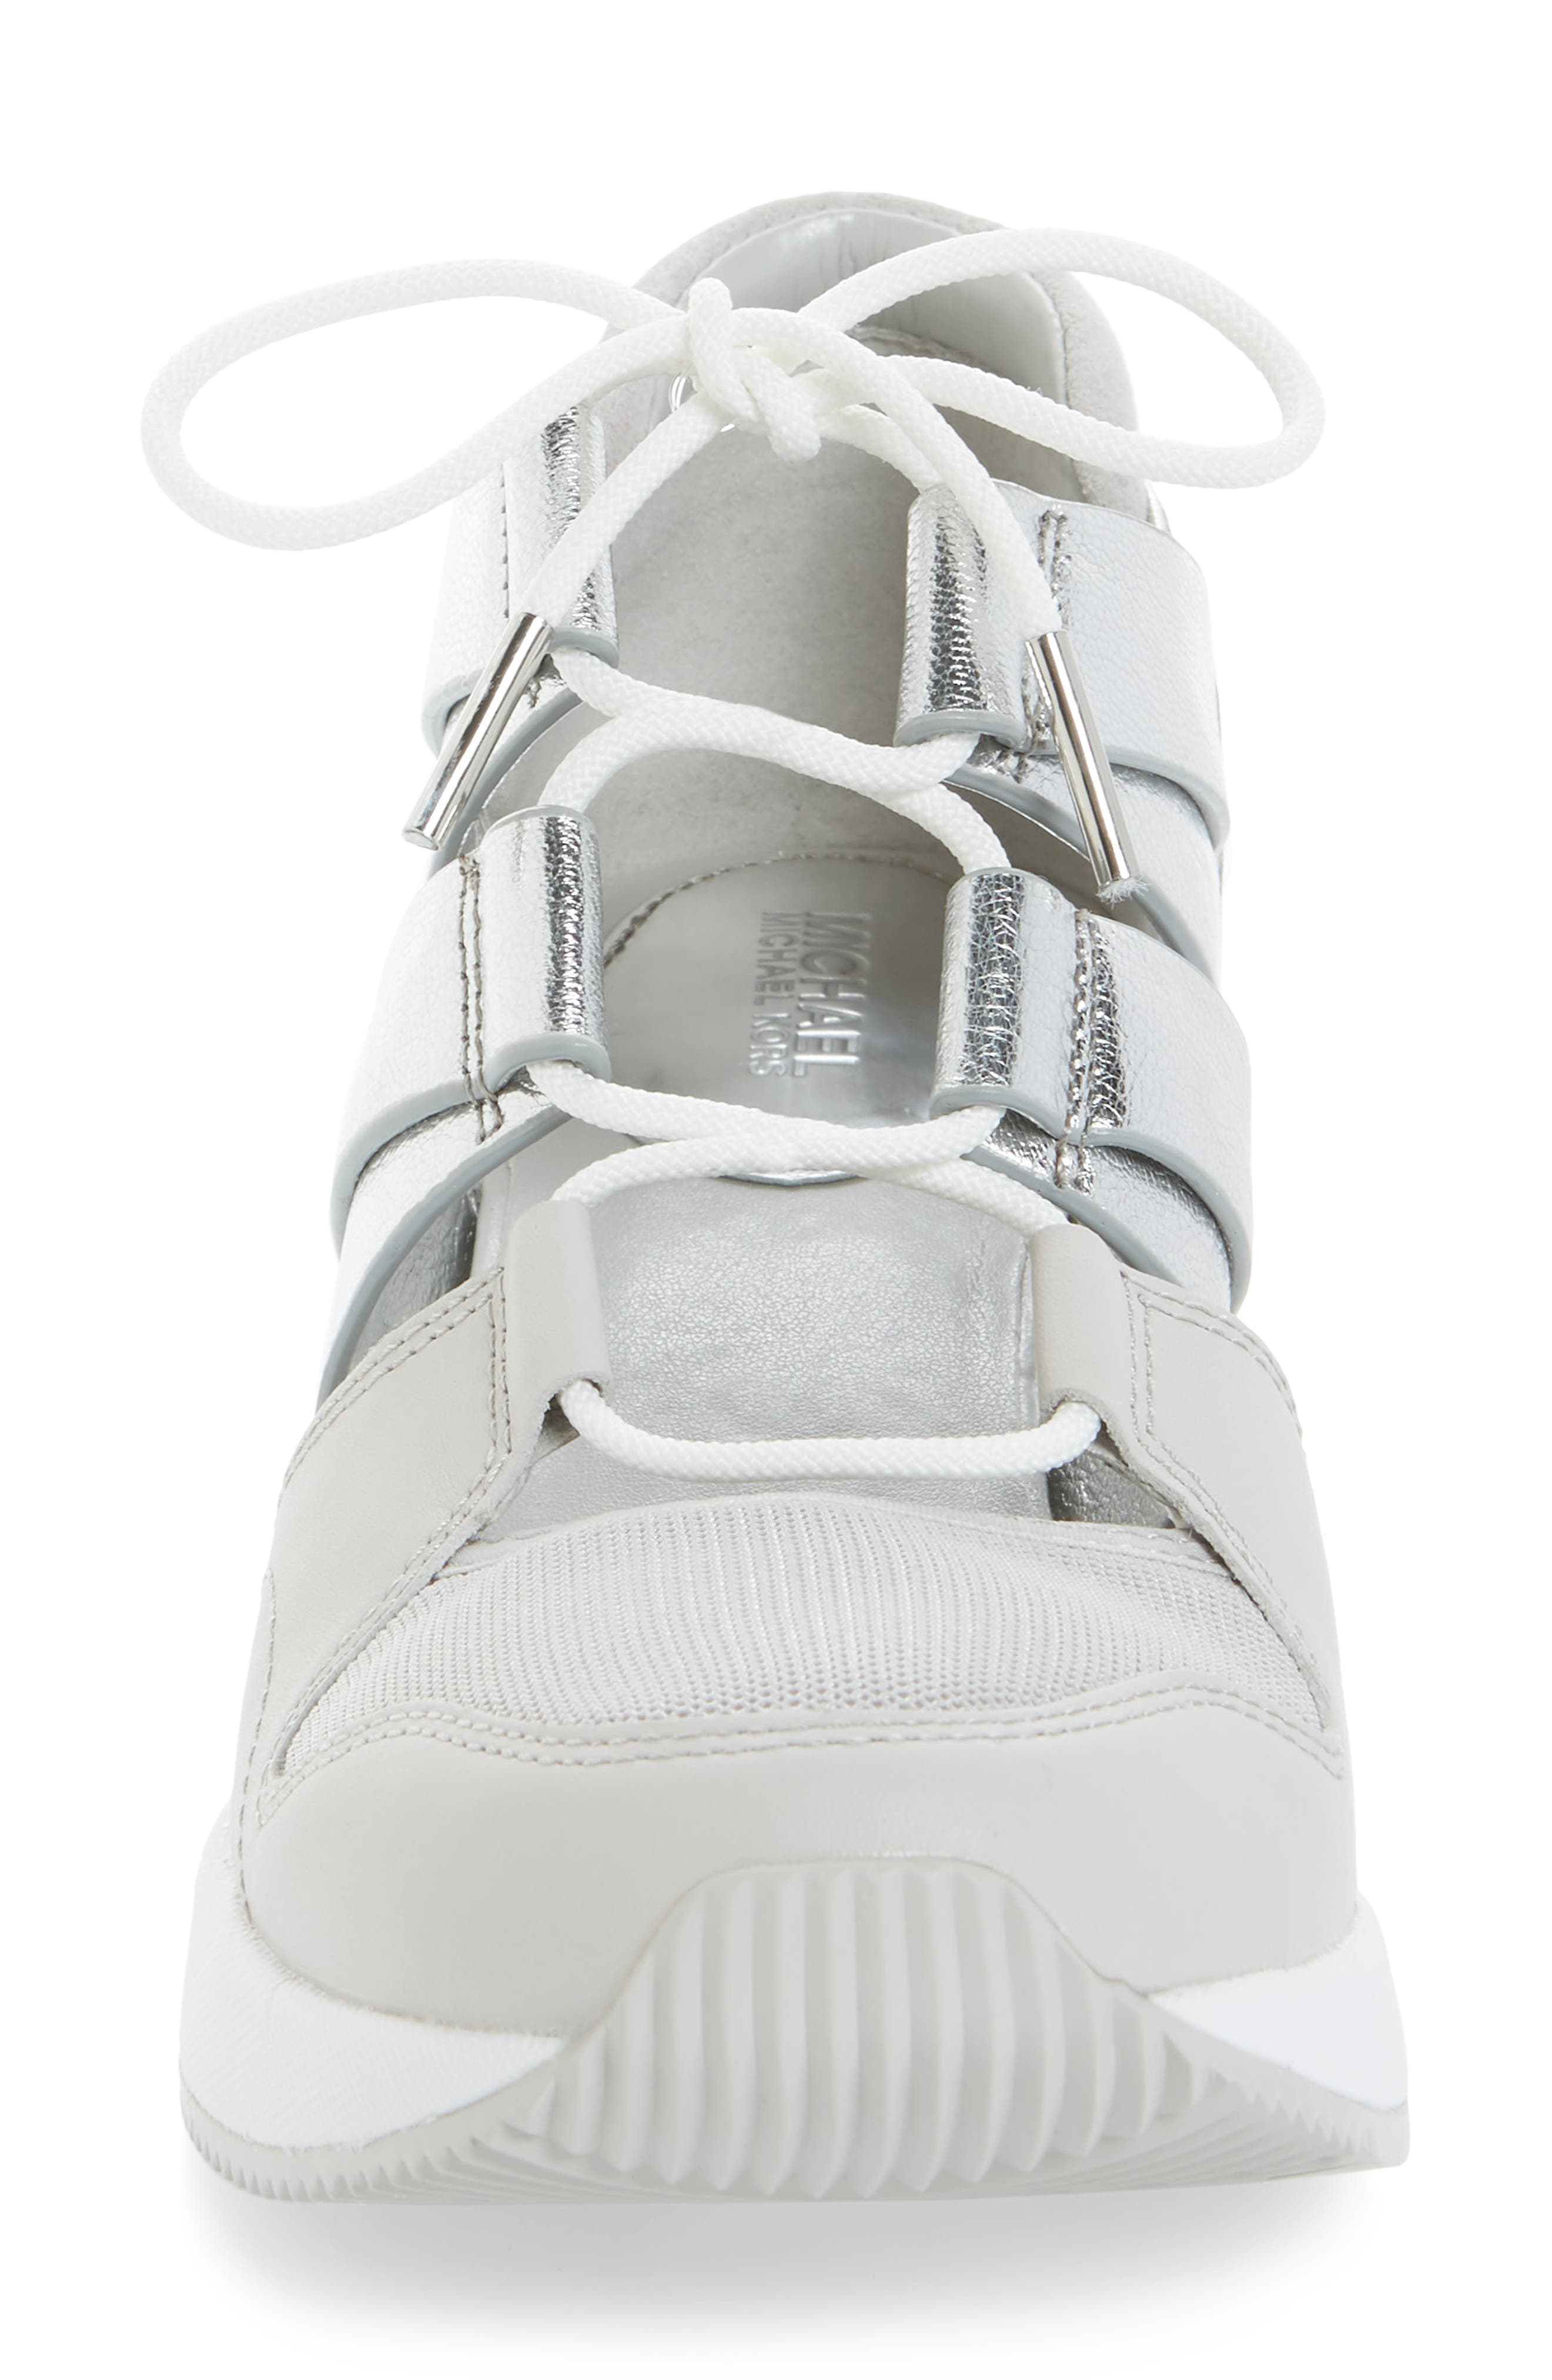 MICHAEL MICHAEL KORS,                             Beckett Sneaker,                             Alternate thumbnail 4, color,                             040